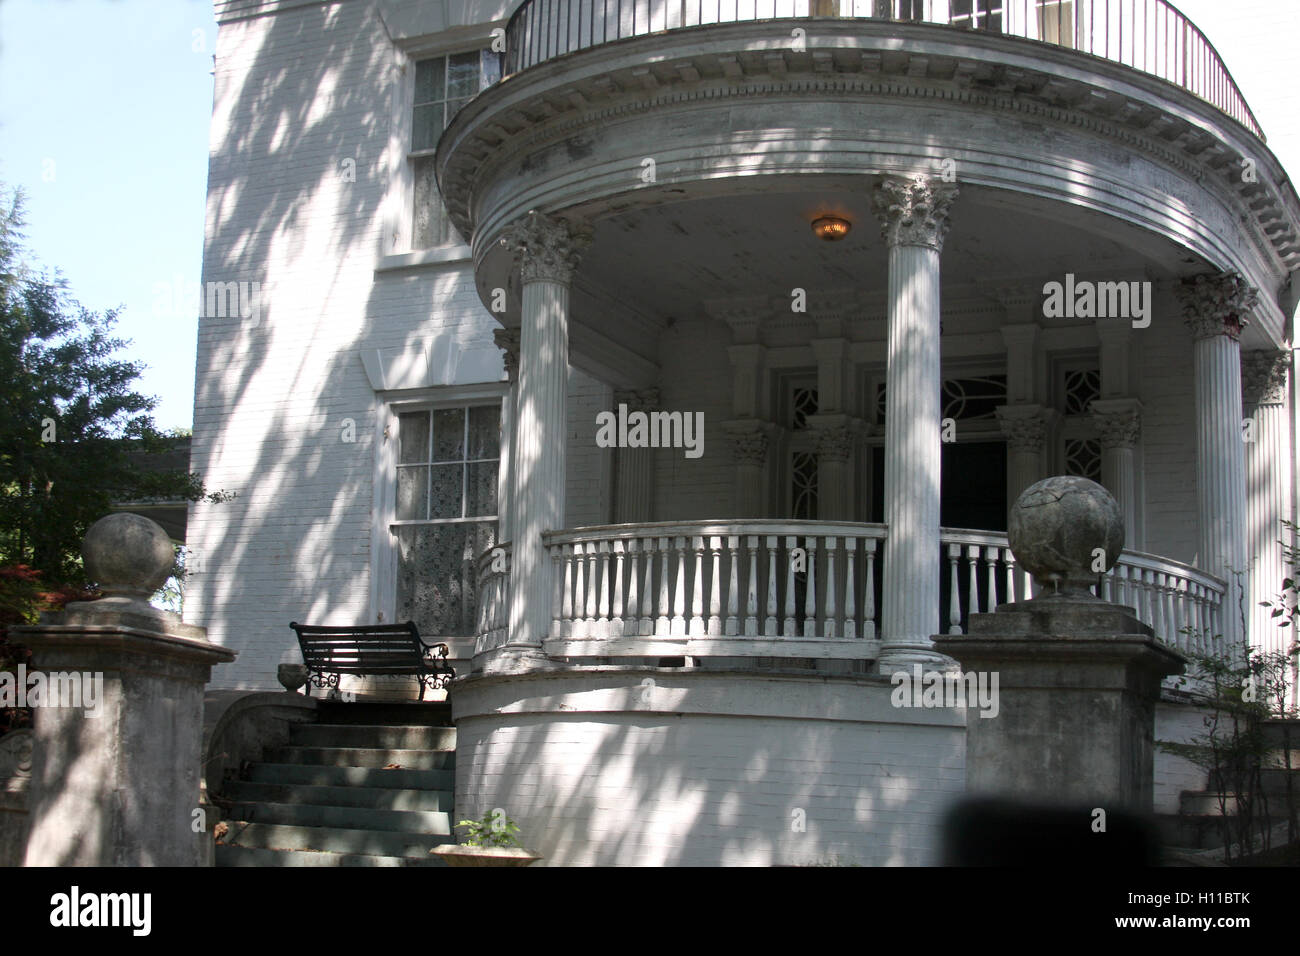 Round Porch Of House With Classical Architecture Stock Photo